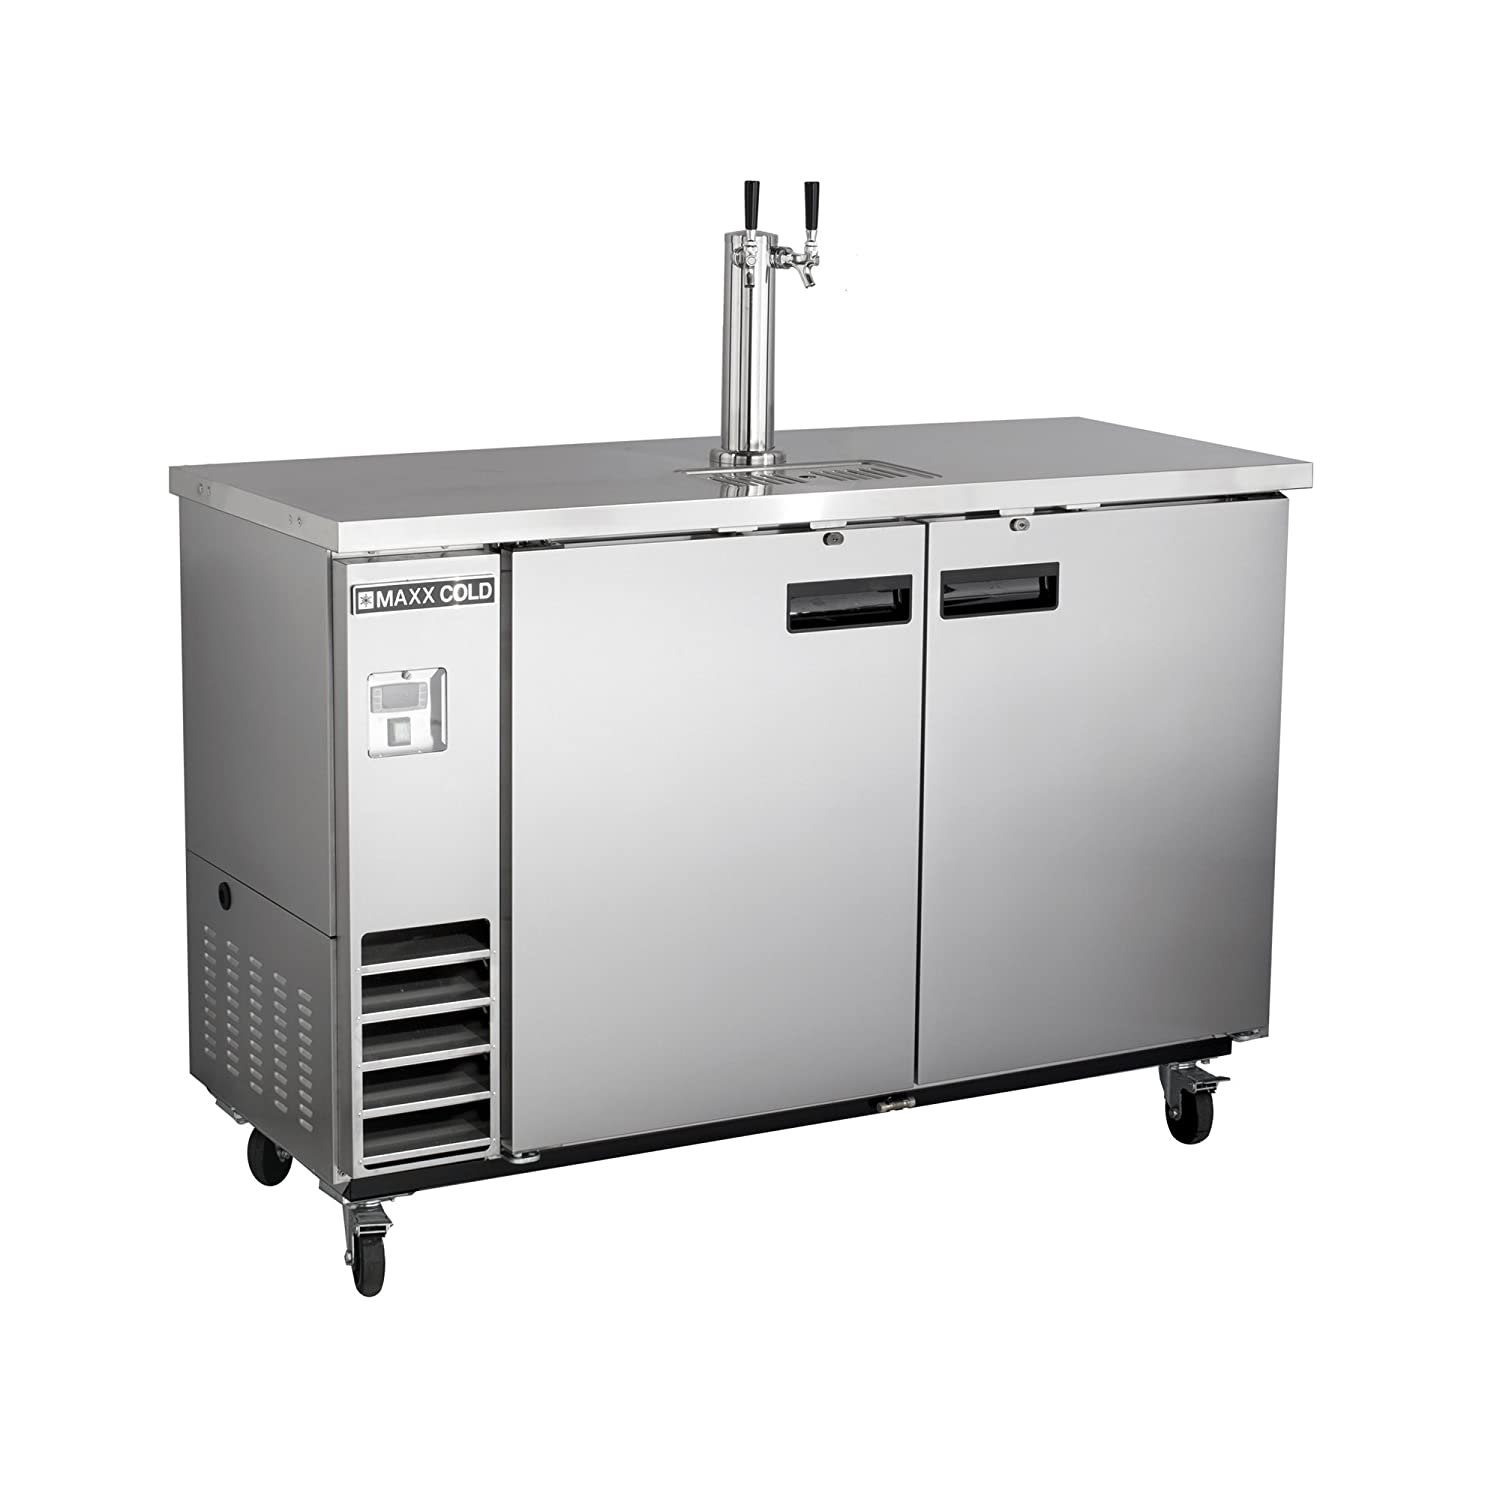 Maxx Cold MXBD48-1S Commercial Stainless Steel NSF Bar Direct Draw Kegerator Beer Dispenser Cooler with 1 Single Tower Tap Holds 2 Half 1/2 Size Keg, 47.5 Inch Wide 10.5 Cubic Feet , Silver